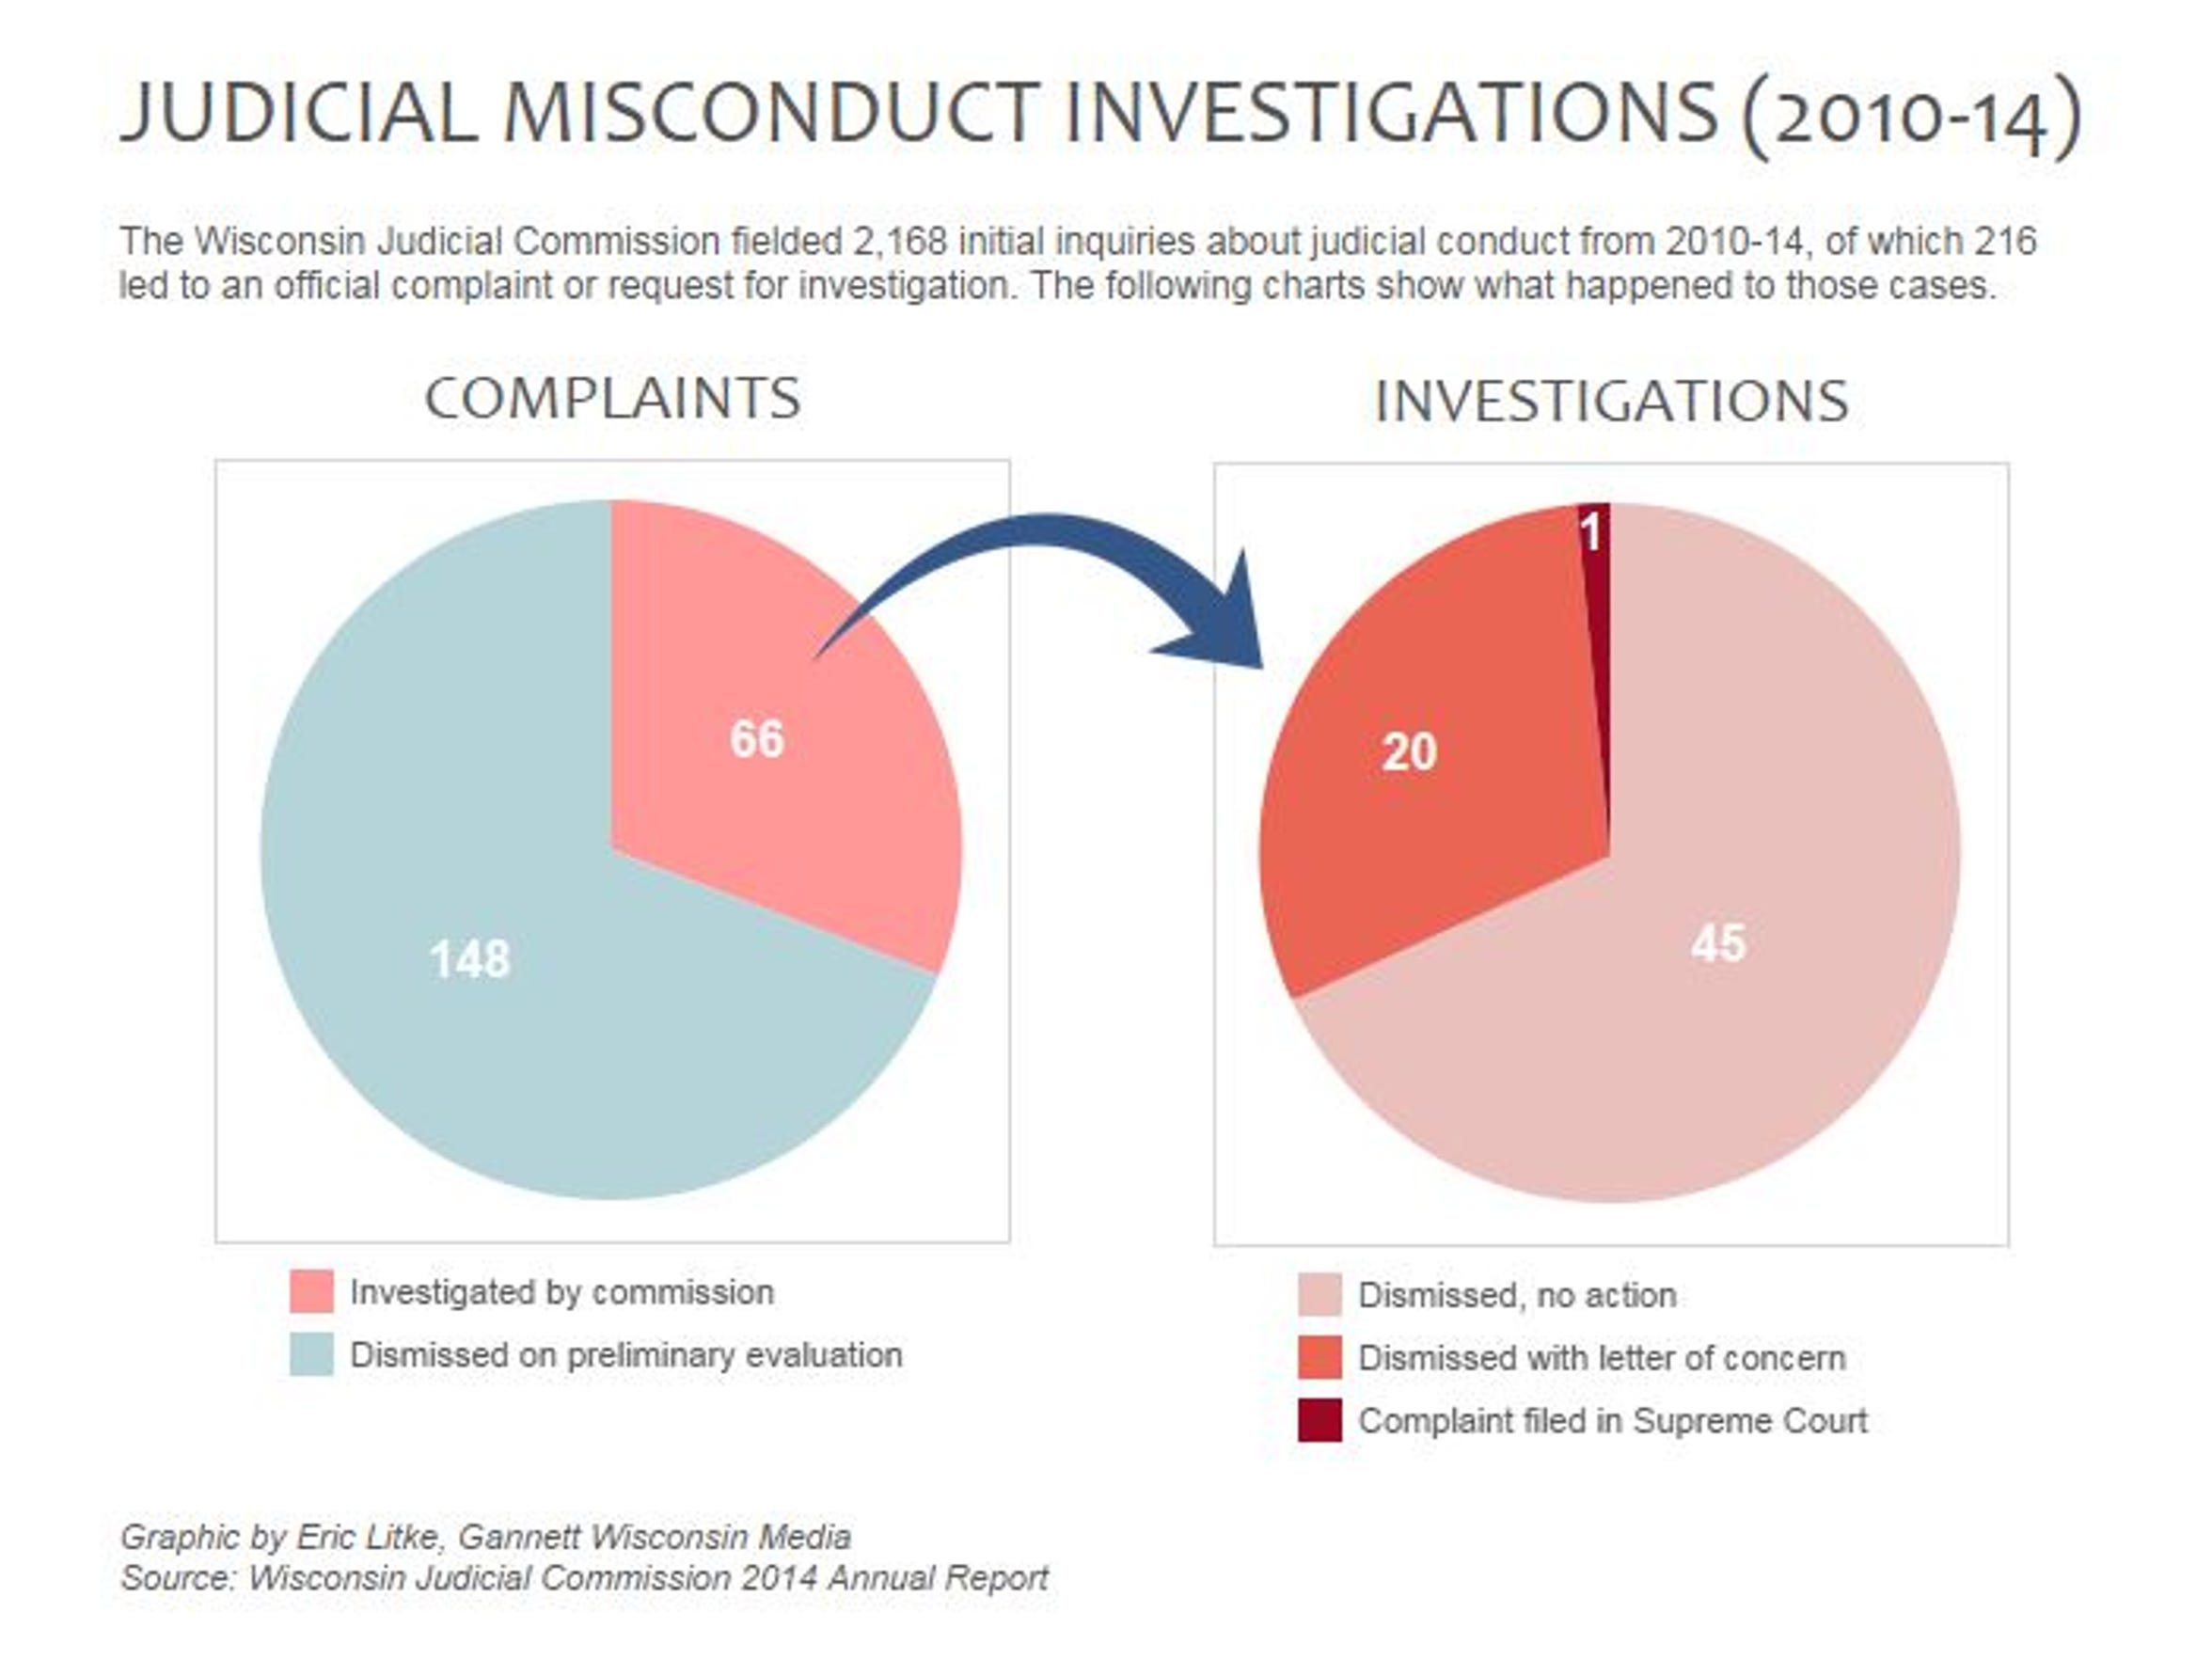 Judicial misconduct investigations